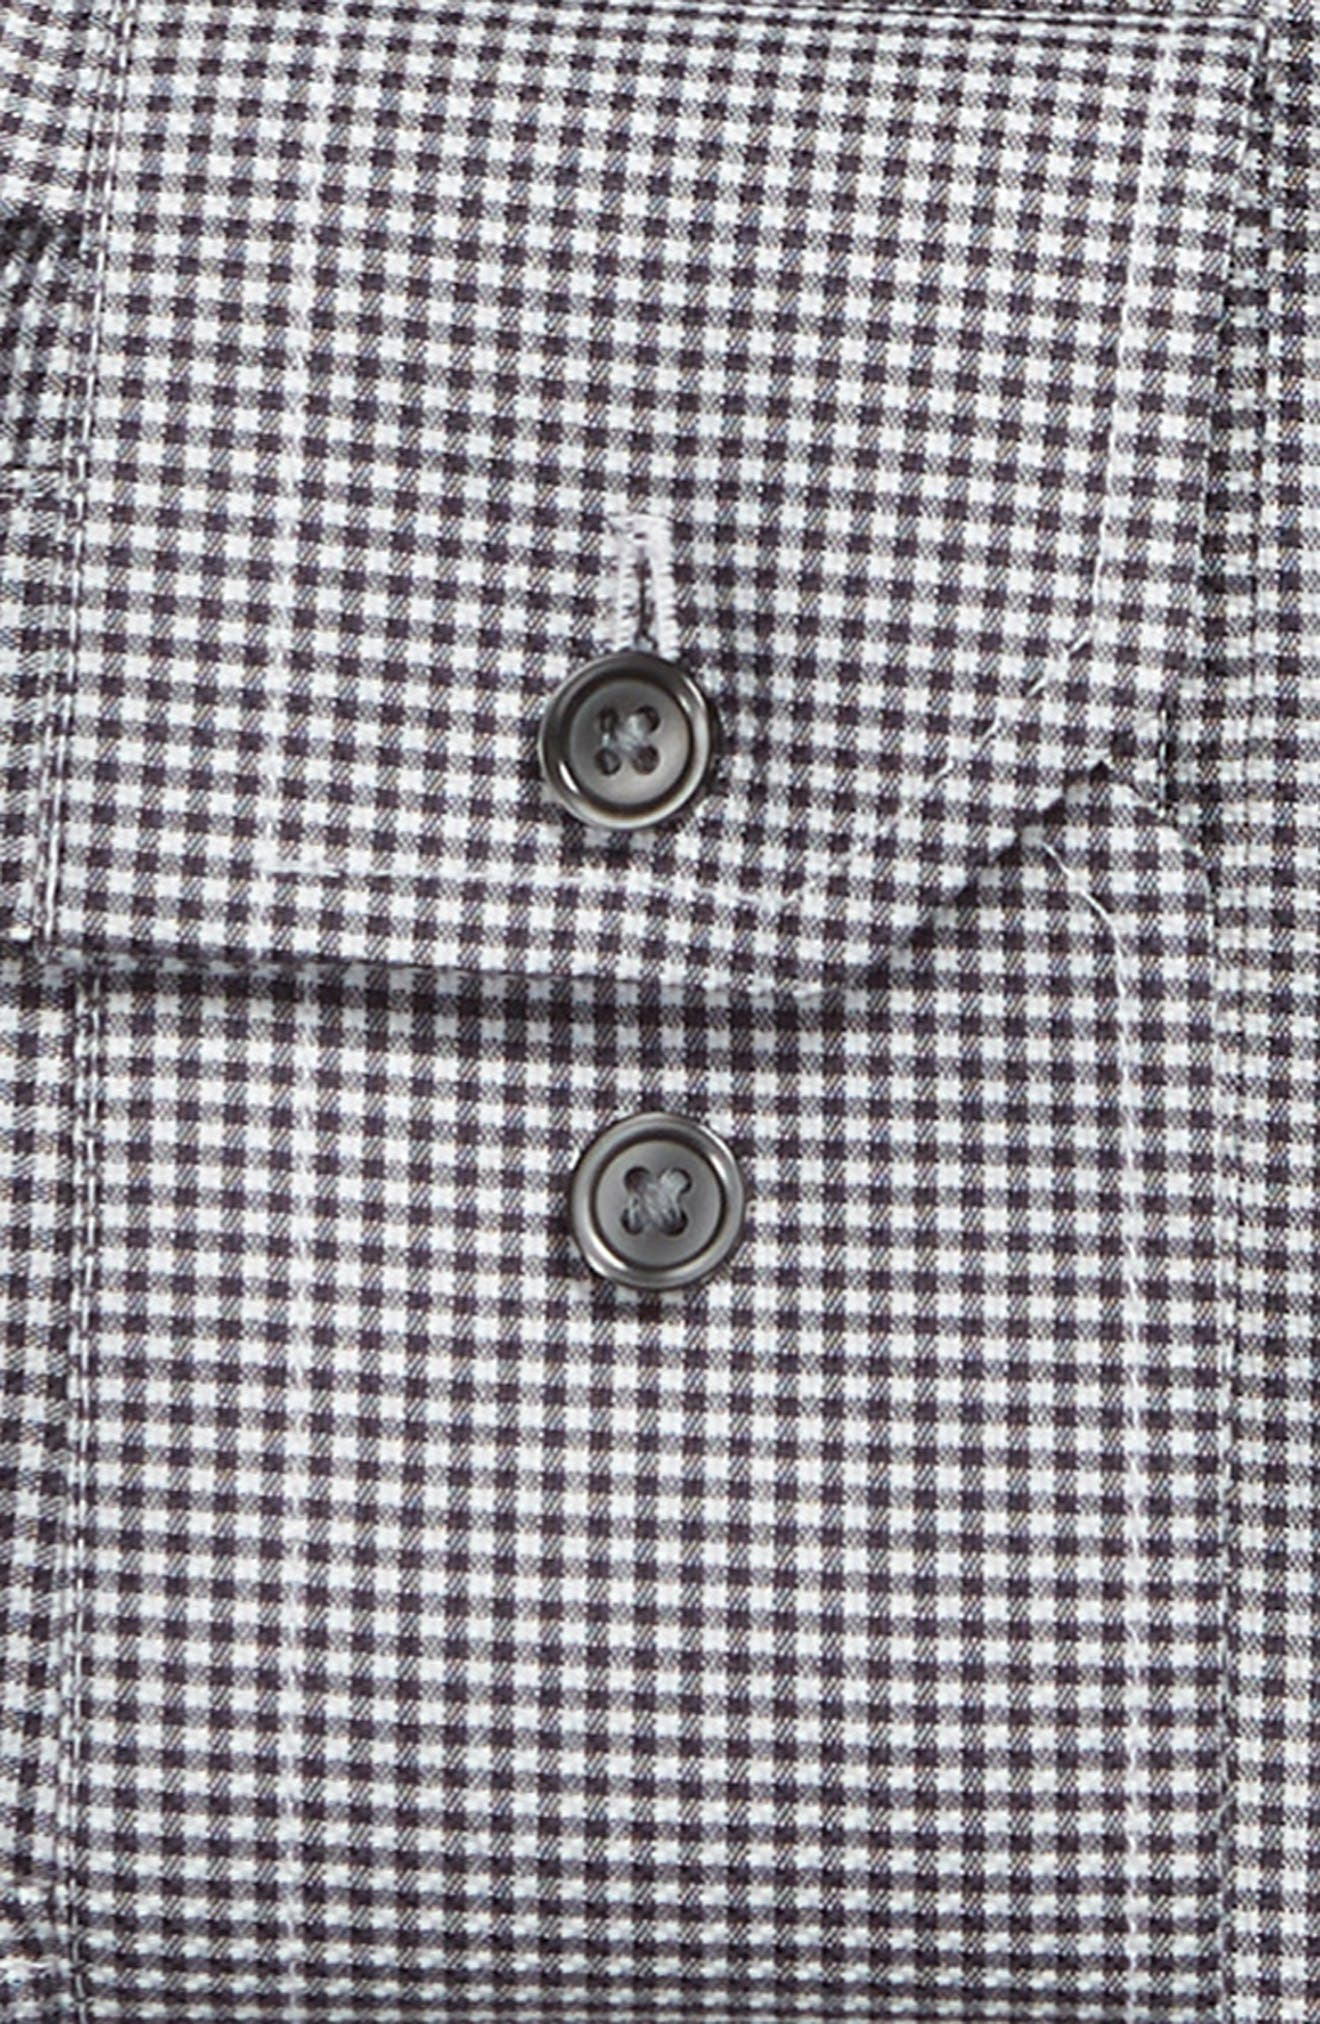 Trim Fit No-Iron Solid Dress Shirt,                             Alternate thumbnail 5, color,                             NAVY CHARCOAL